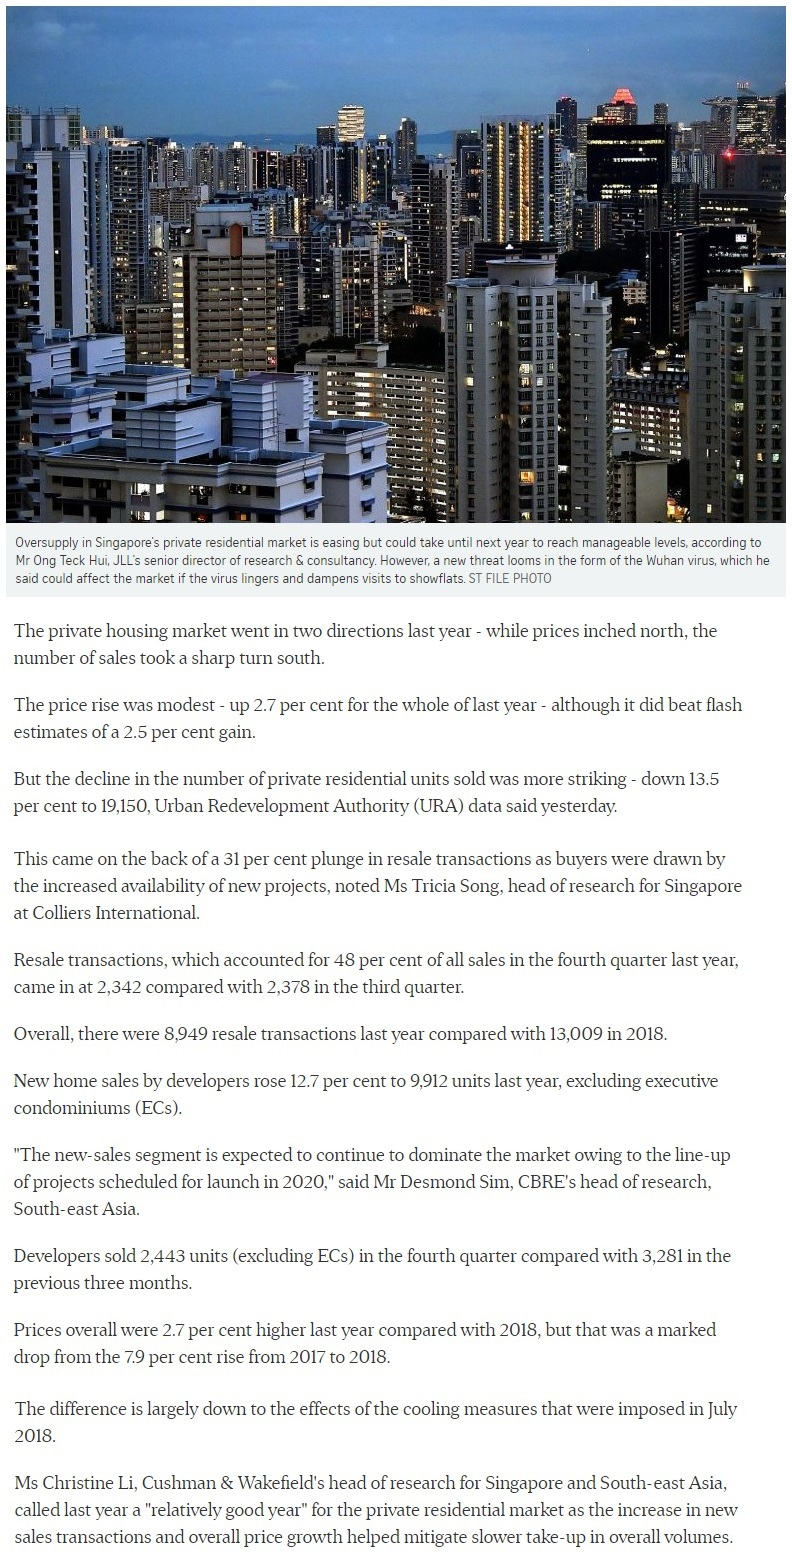 The Woodleigh Residences - Singapore private home prices inch up 2.7% for 2019